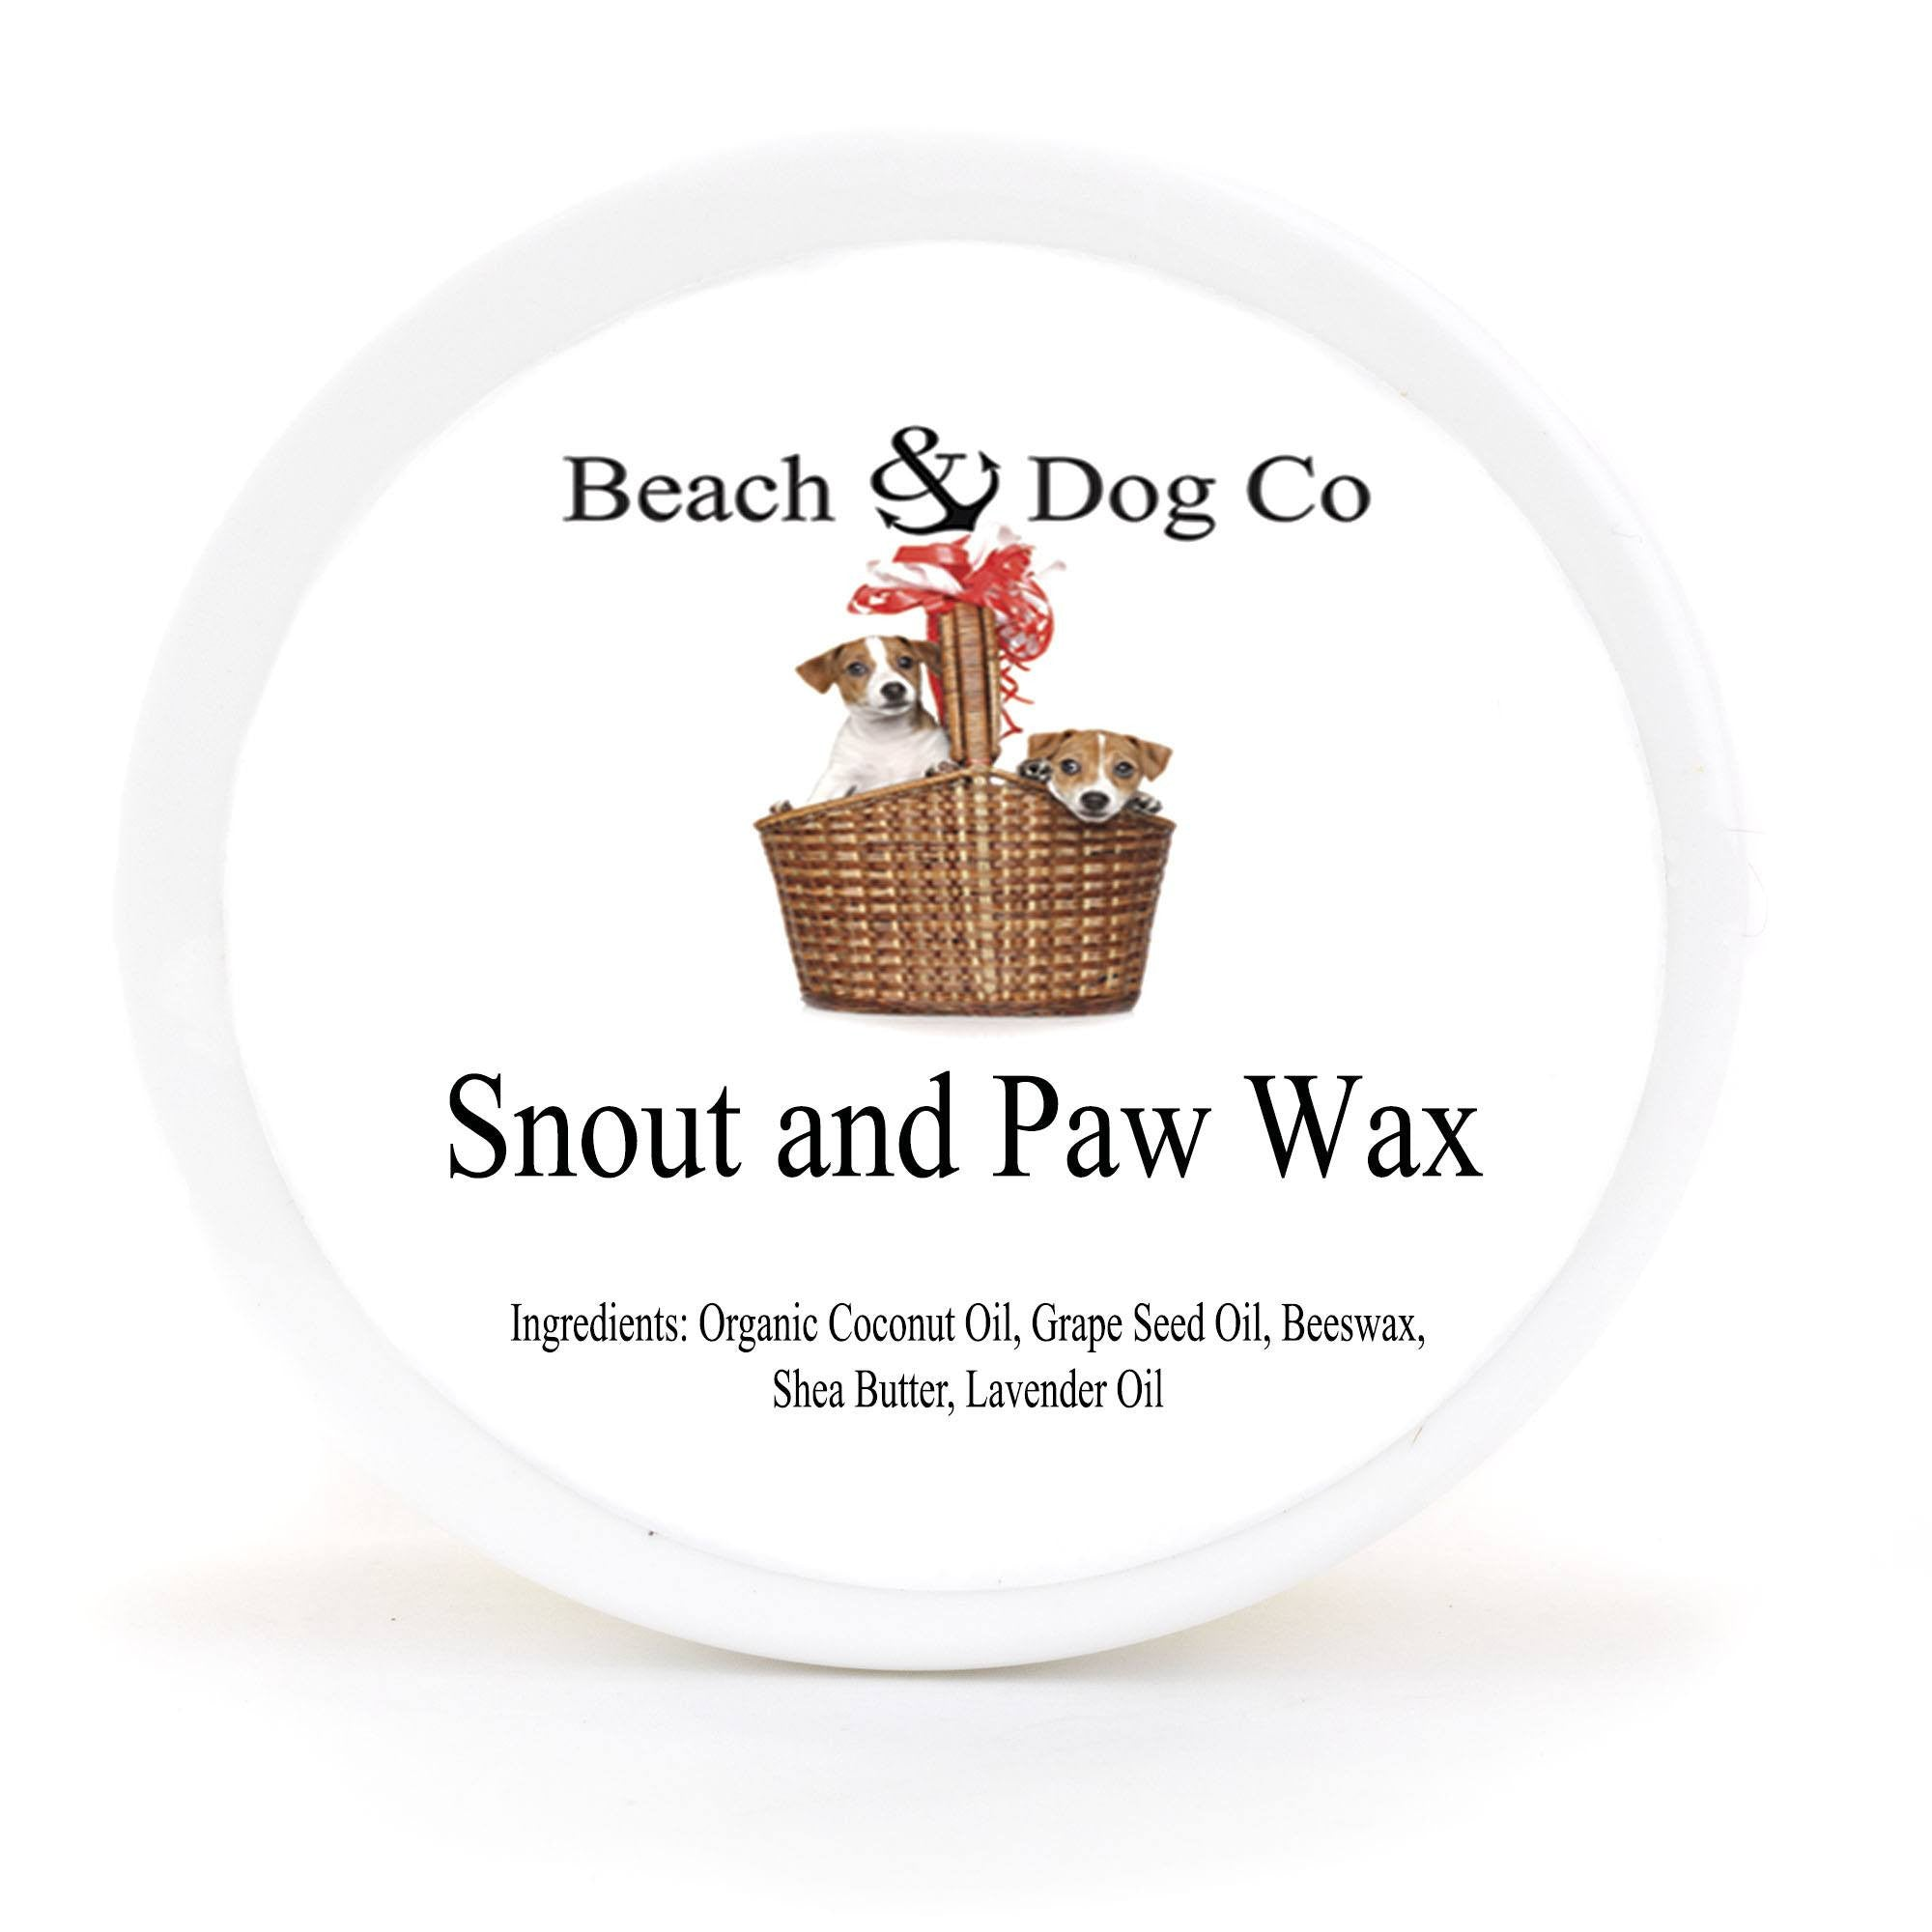 Snout and Paw Wax (2 oz) For Dry Chapped Cracked Noses and Paws - Beach & Dog Co.